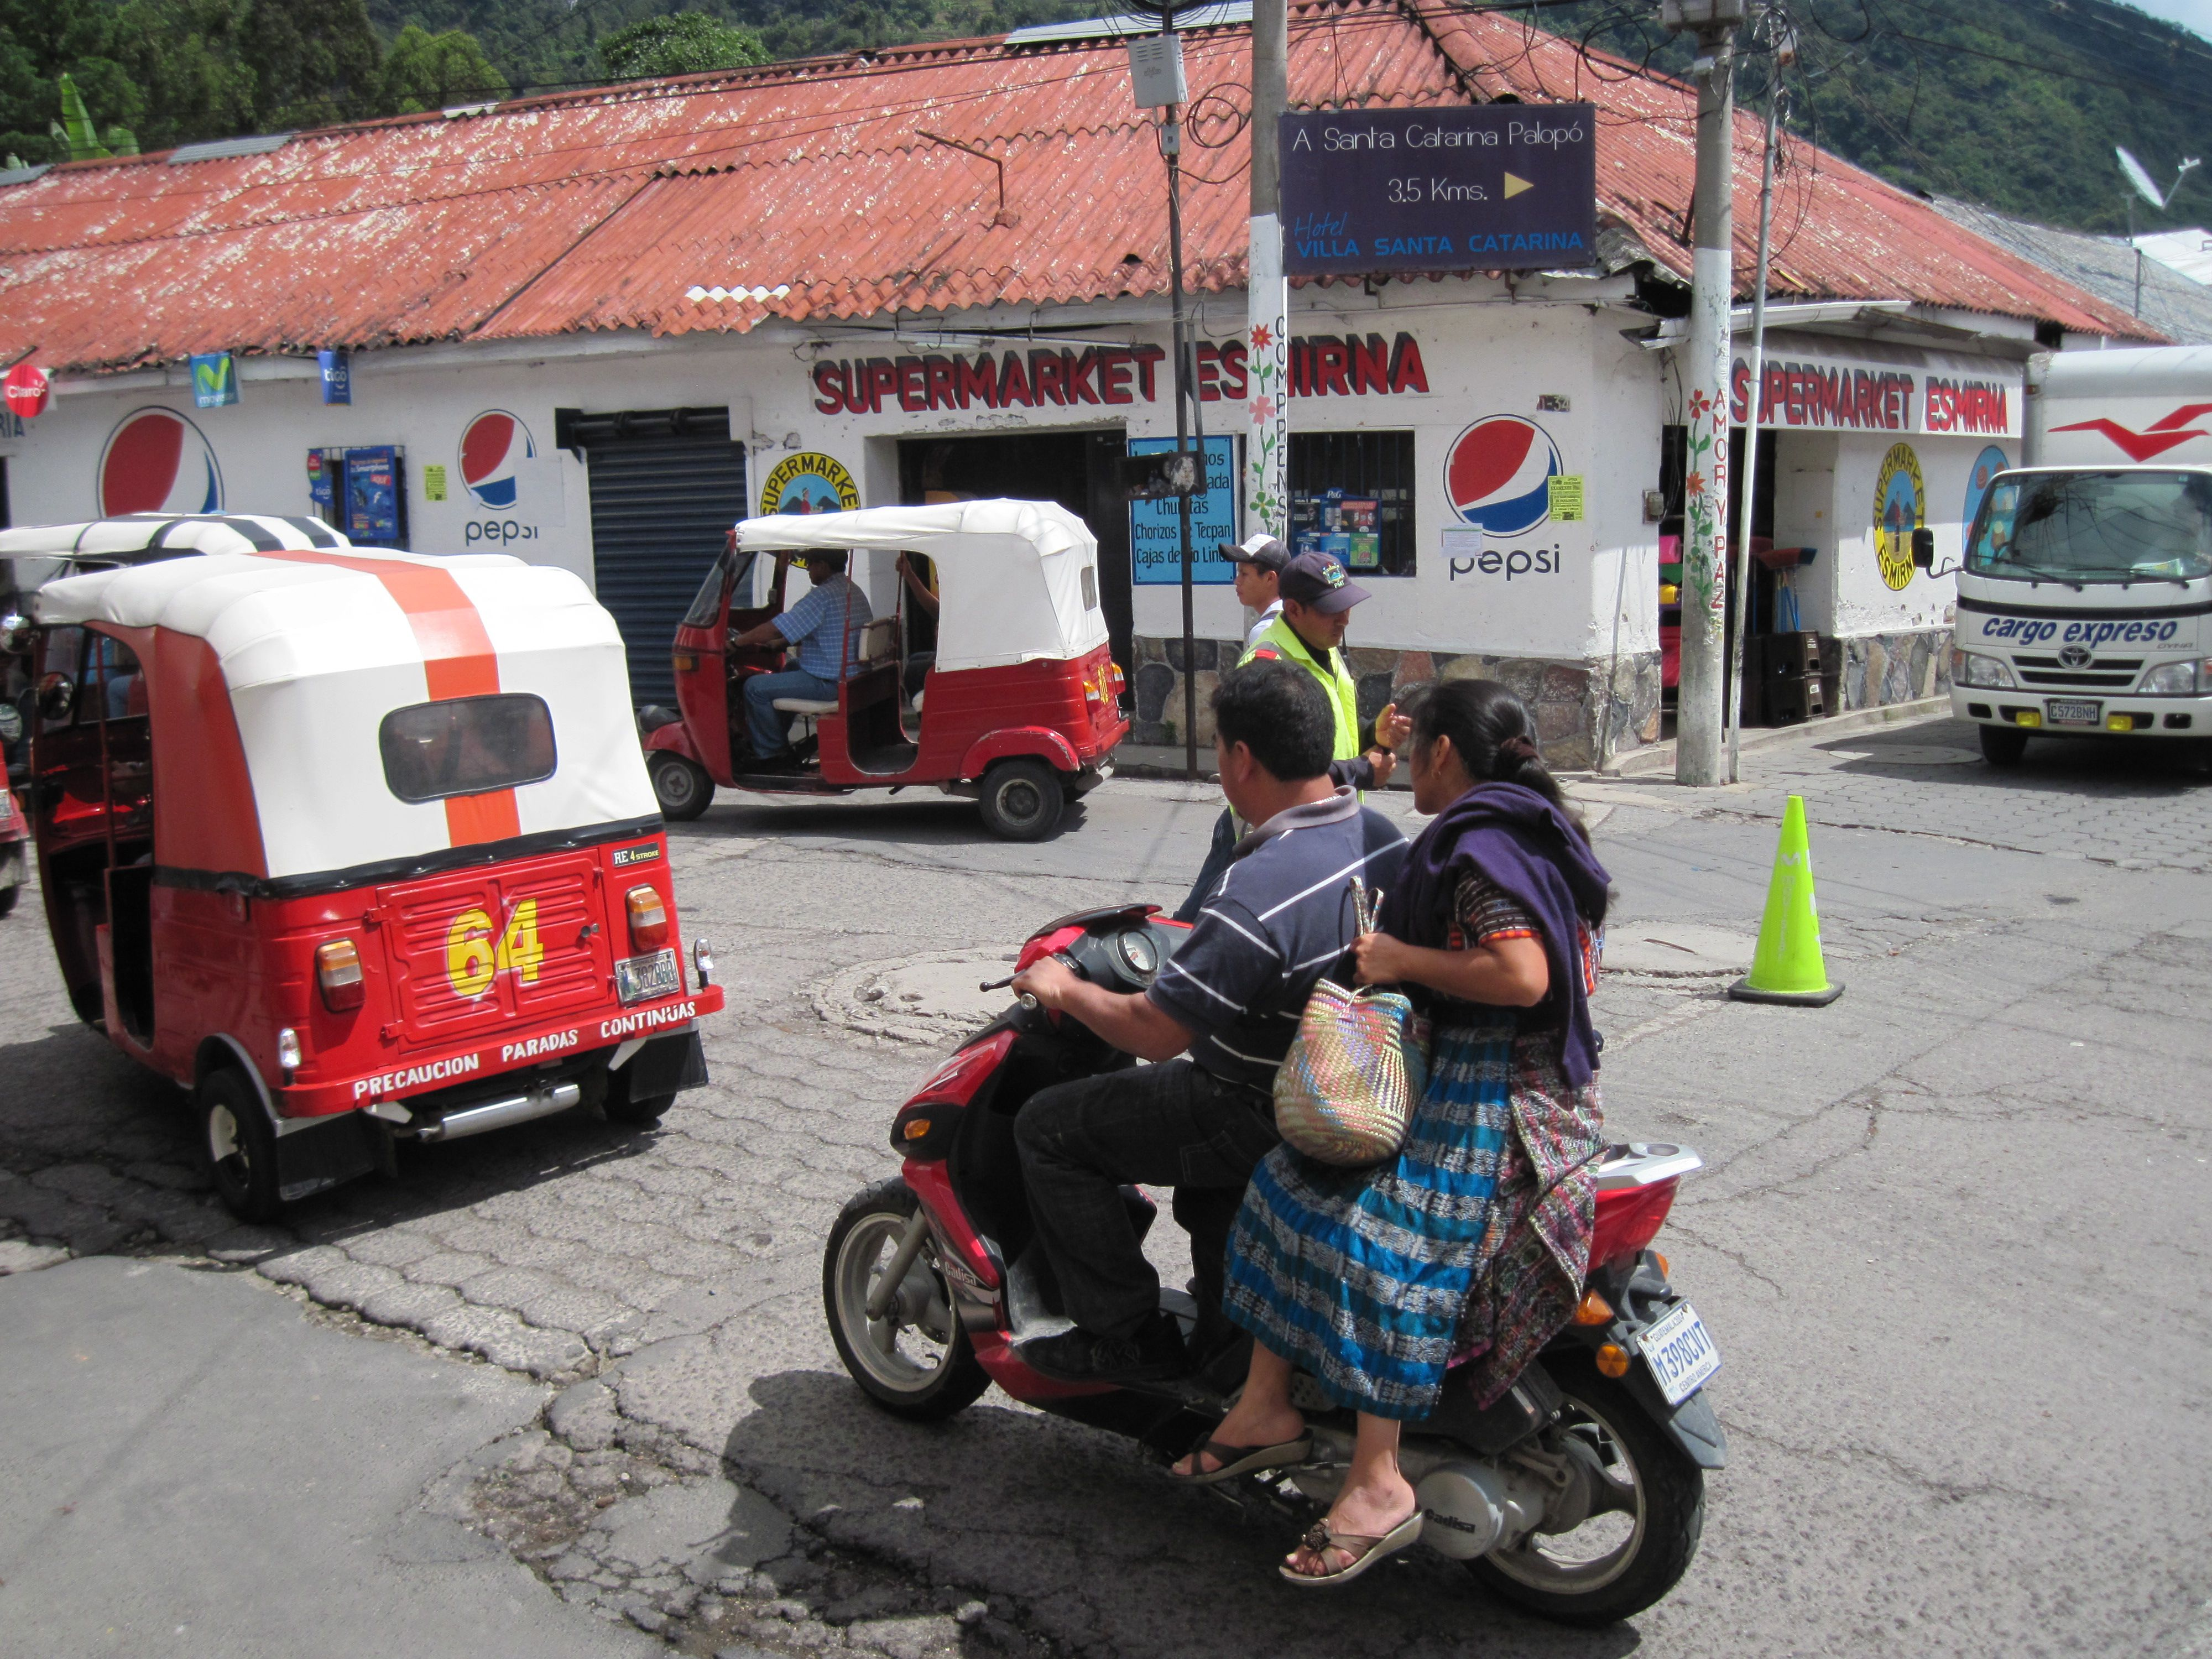 cheap means of transportation used all through out guatemala